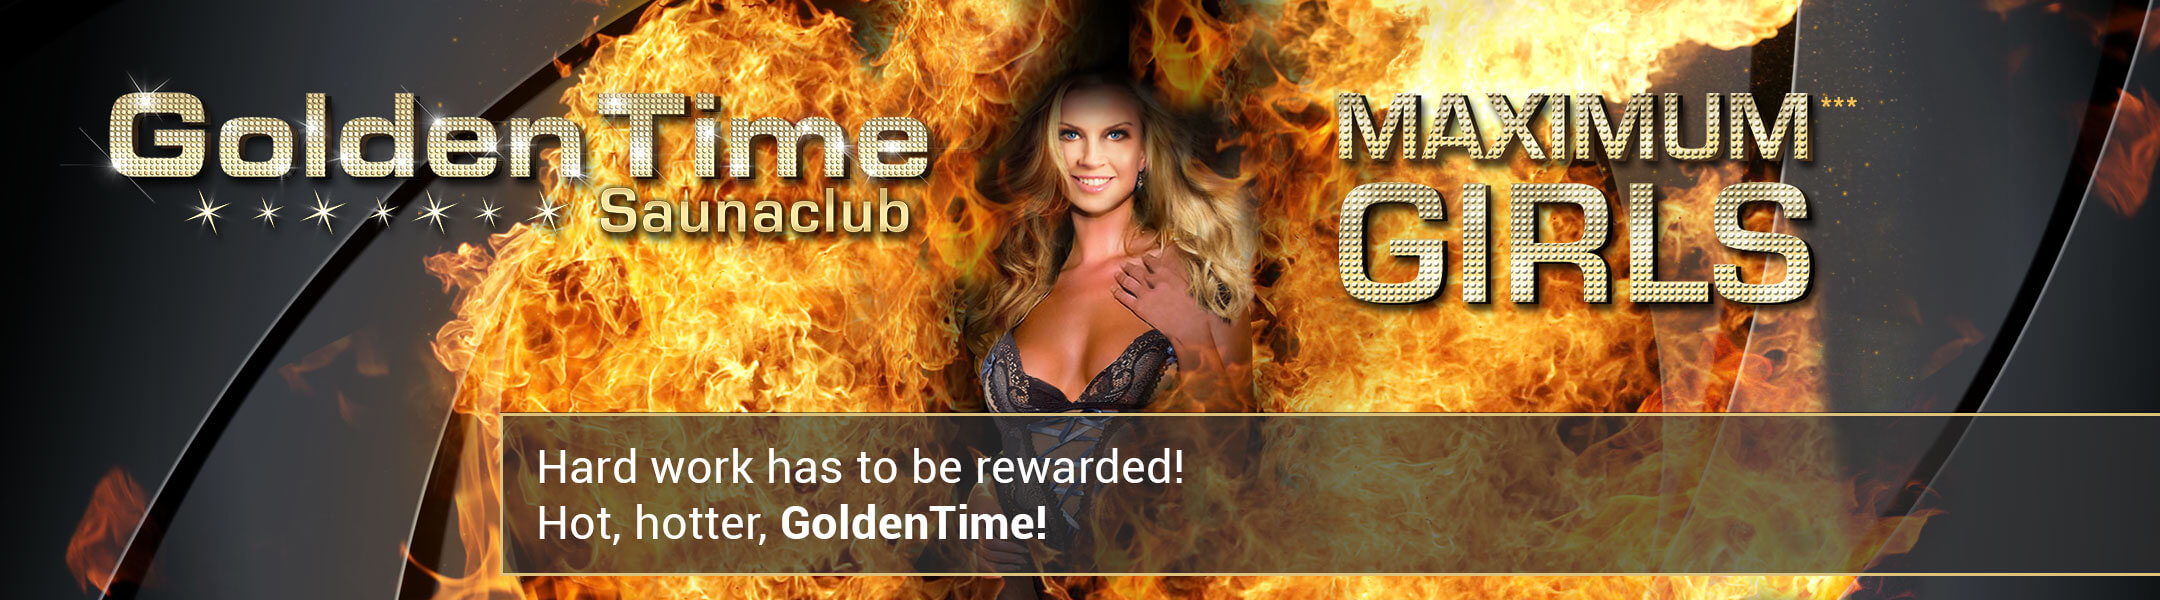 Hard work has to be rewarded! Hot, hotter GoldenTime!